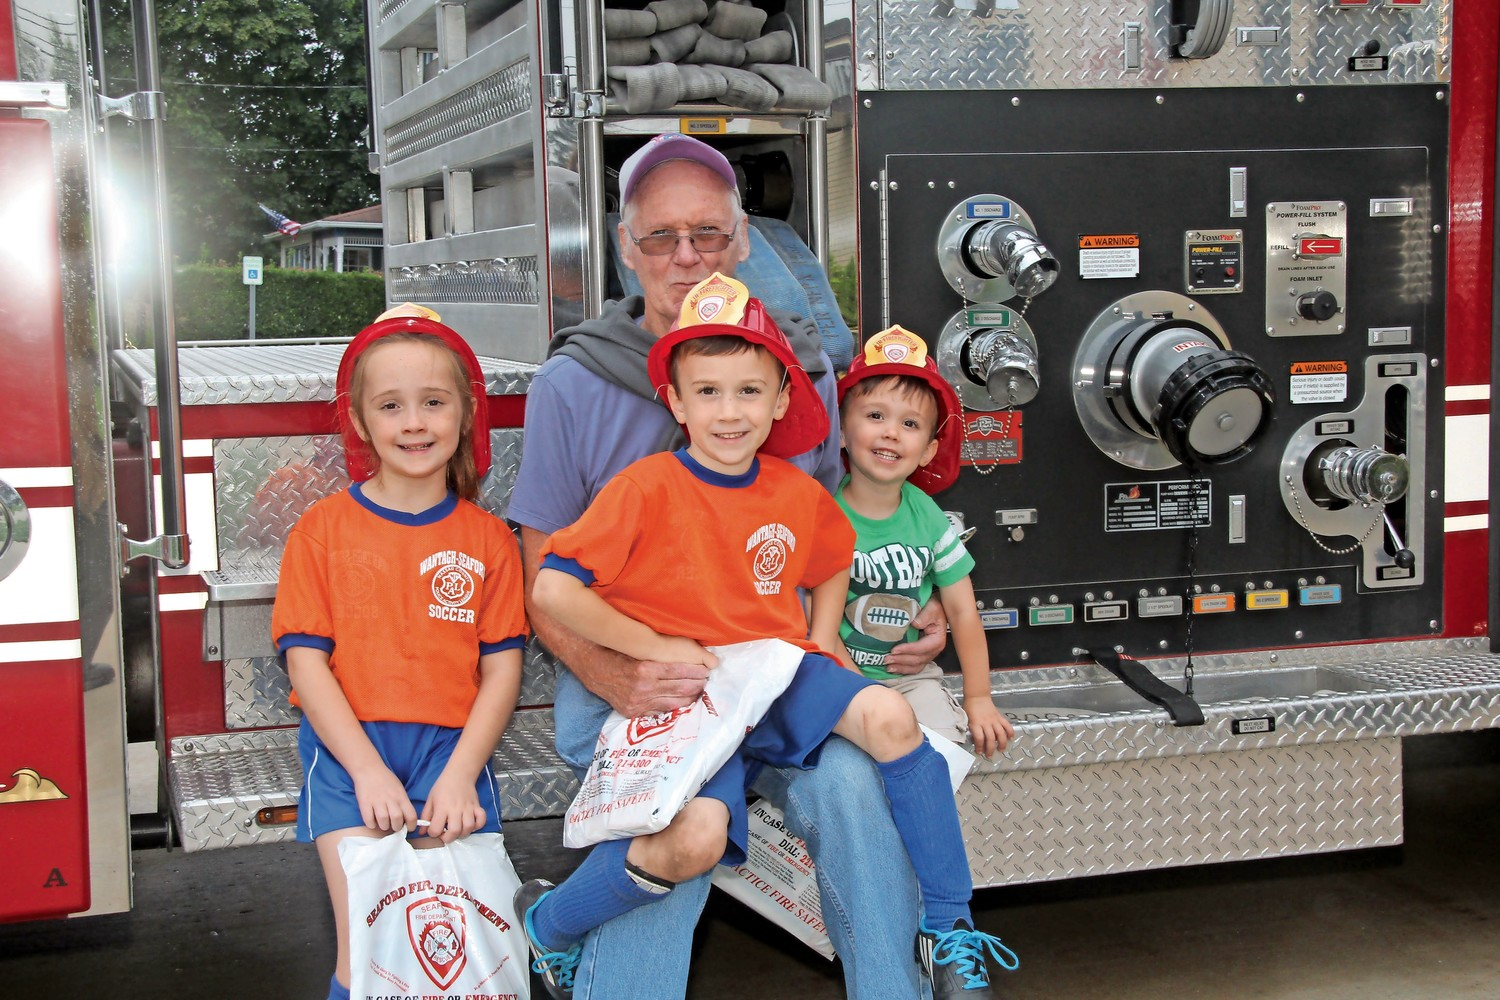 Matt Strong and his grandchildren Katie, 7, Will, 5, and Mikey, 2, had fun at the open house after they got a tour of the fire truck.